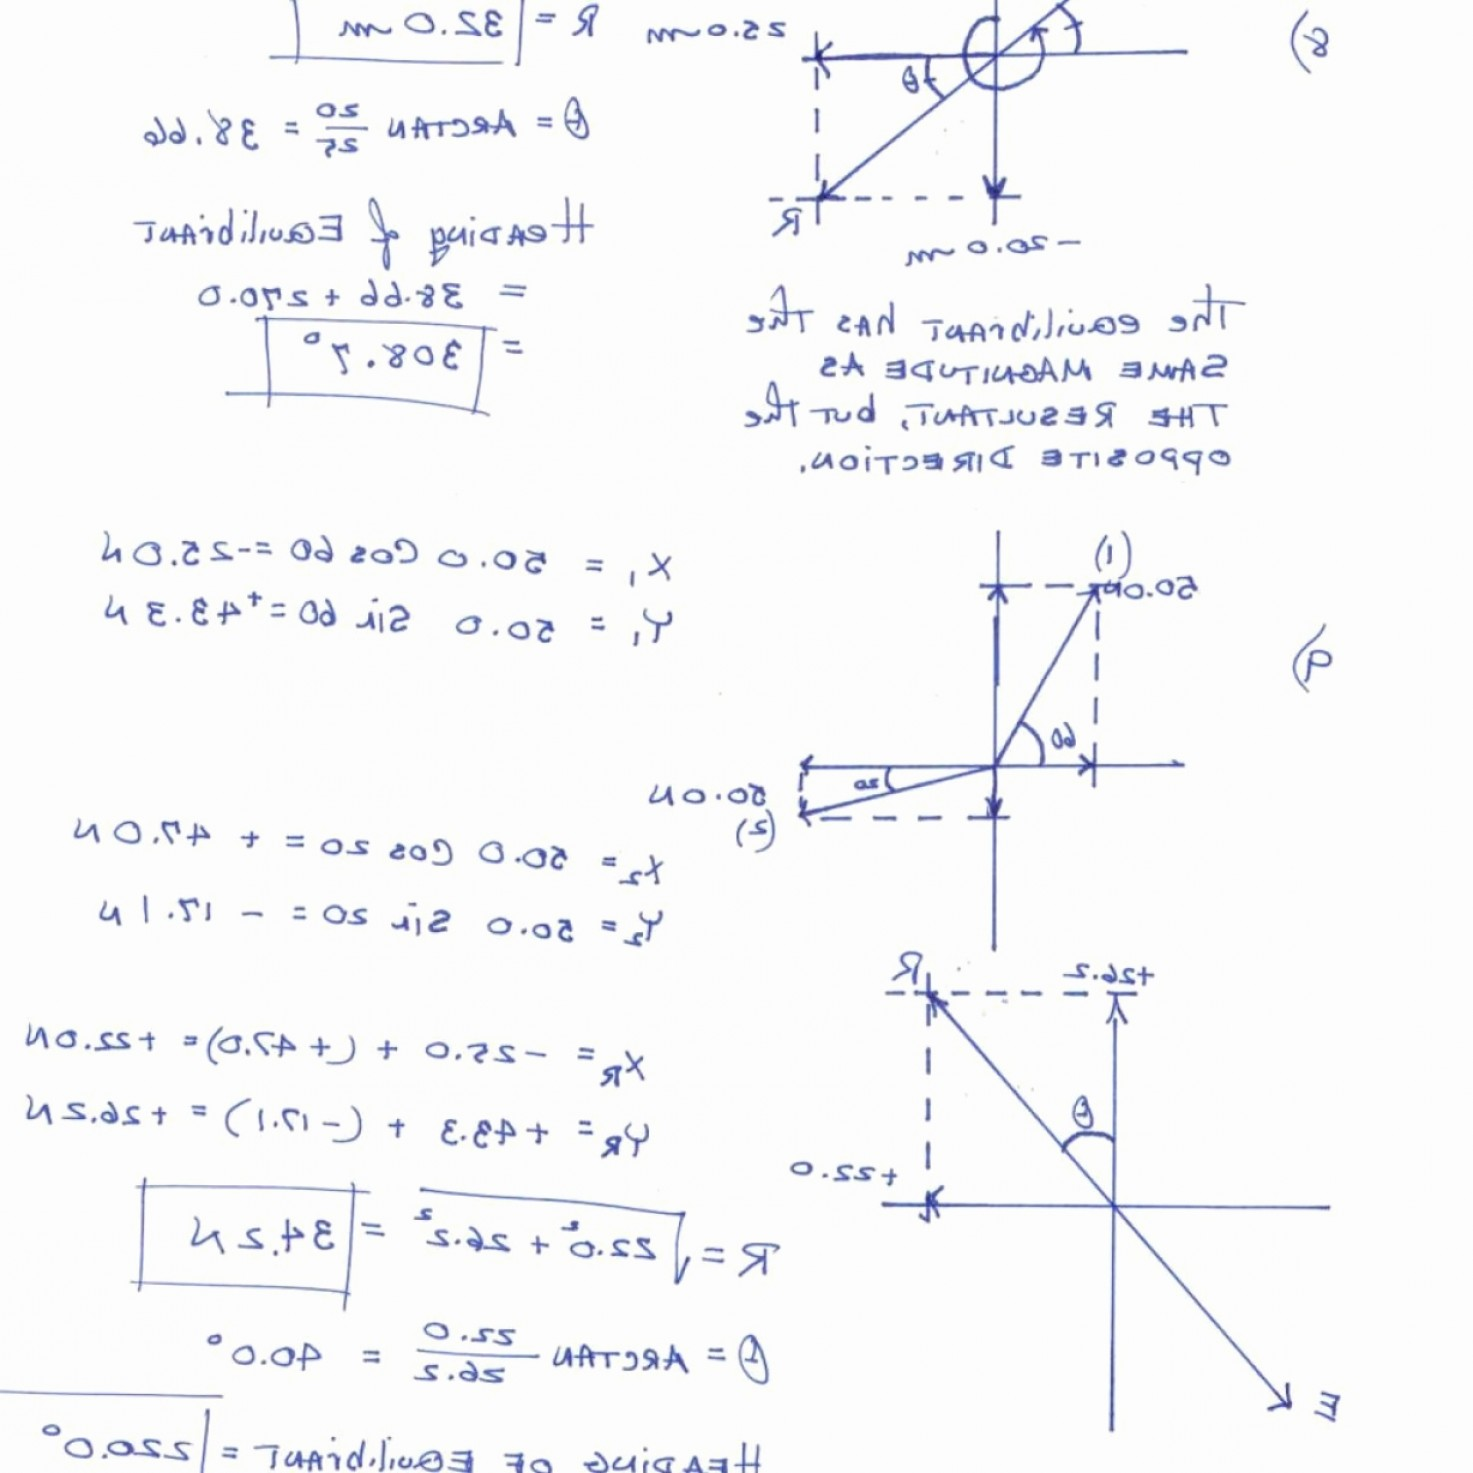 Worksheet Combining Vectors Graphically Answer Key